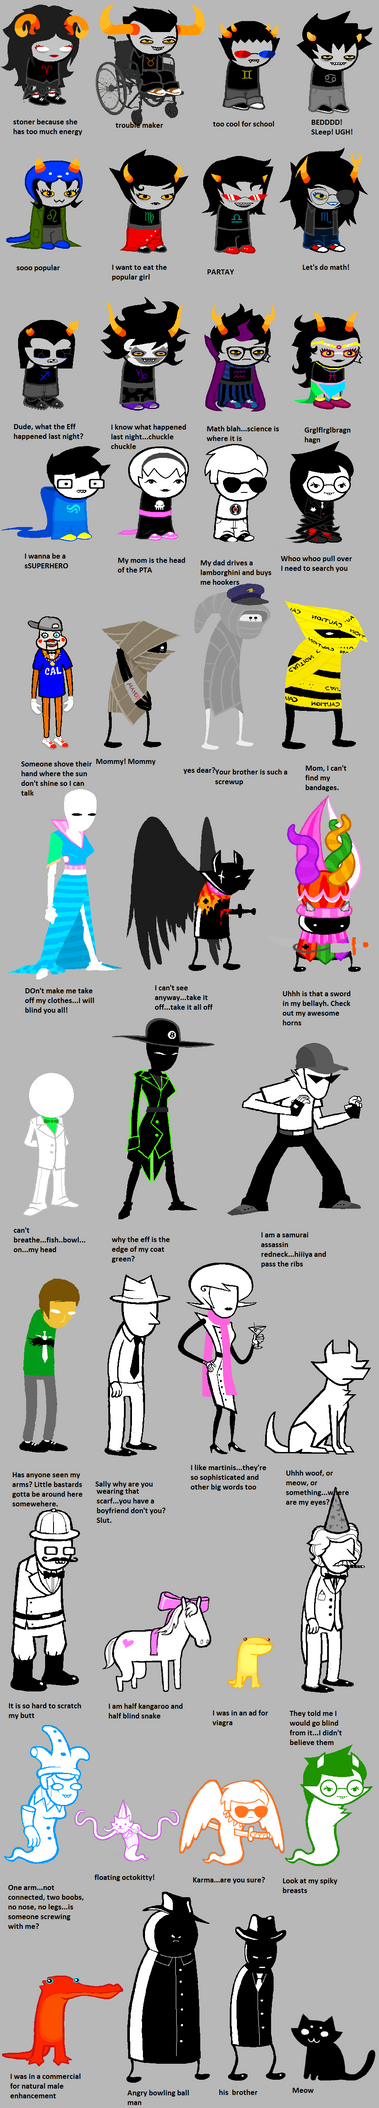 Homestuck According To My Dad... by Shiiruba